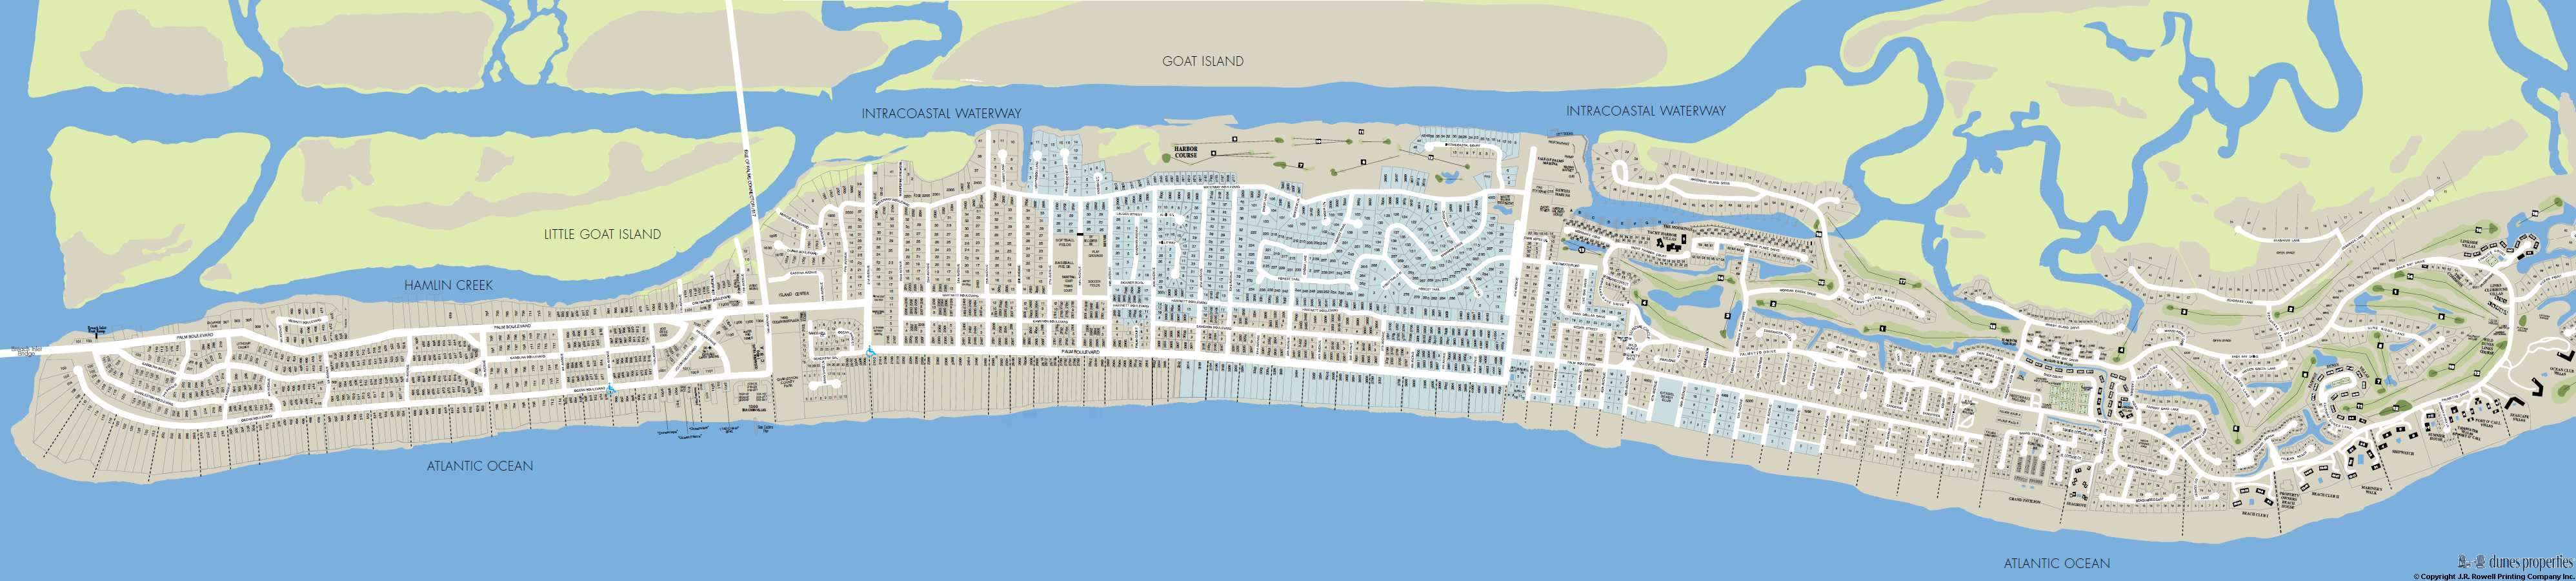 Isle Of Palms Map Isle Of Palms Real Estate Homes & Condo's For Sale & Rent Isle Of Palms Map